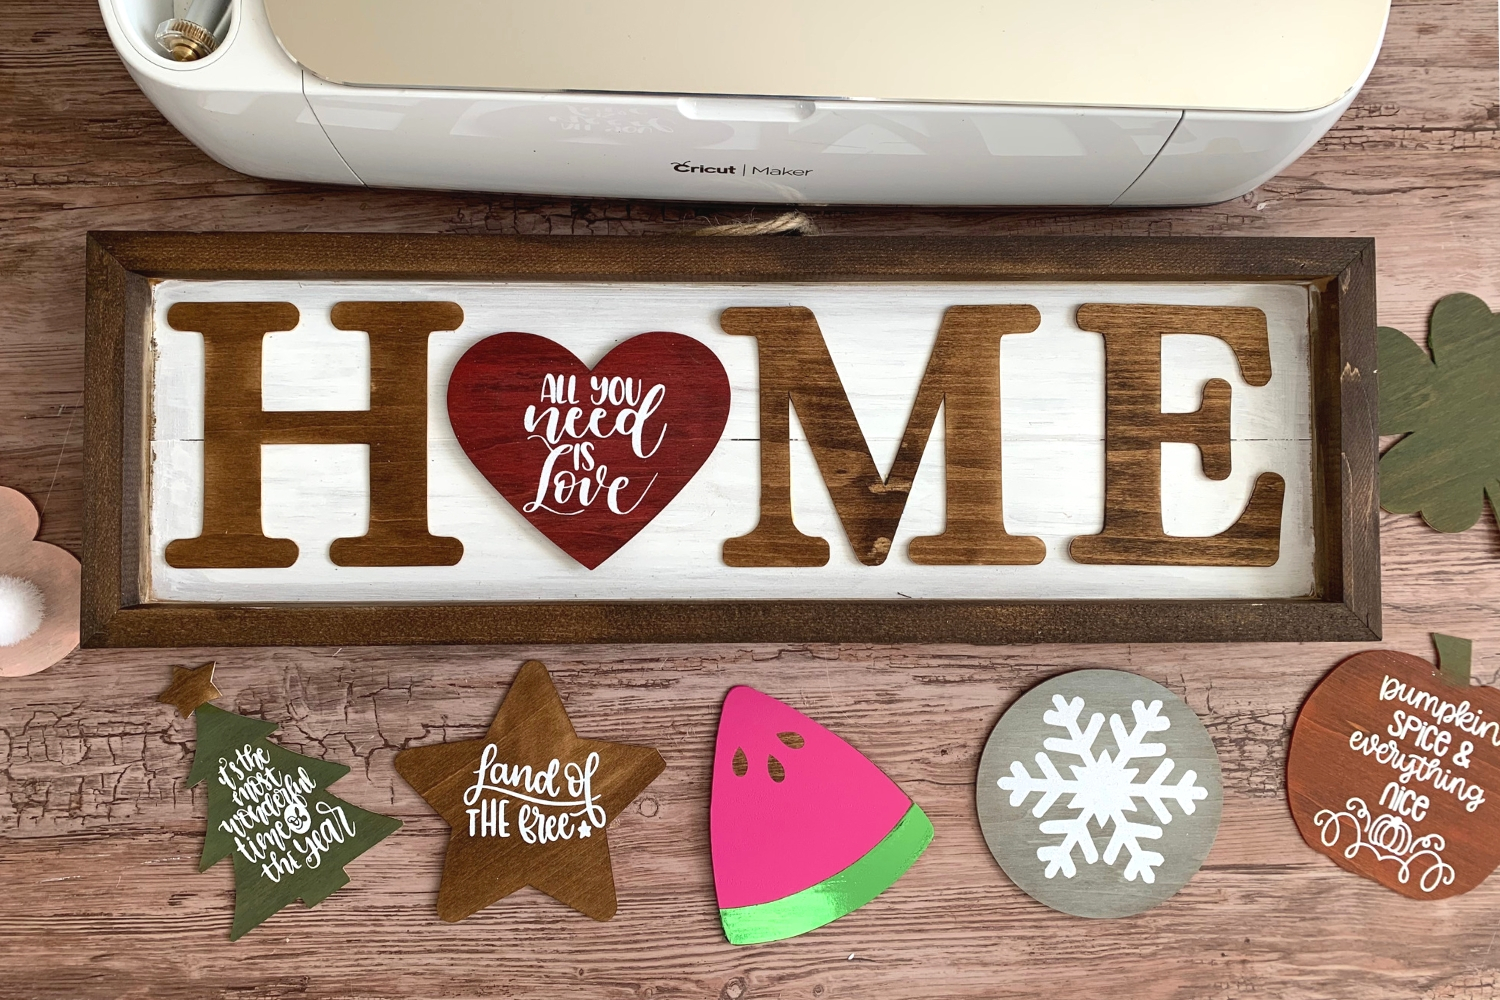 cricut maker wood projects seasonal sign